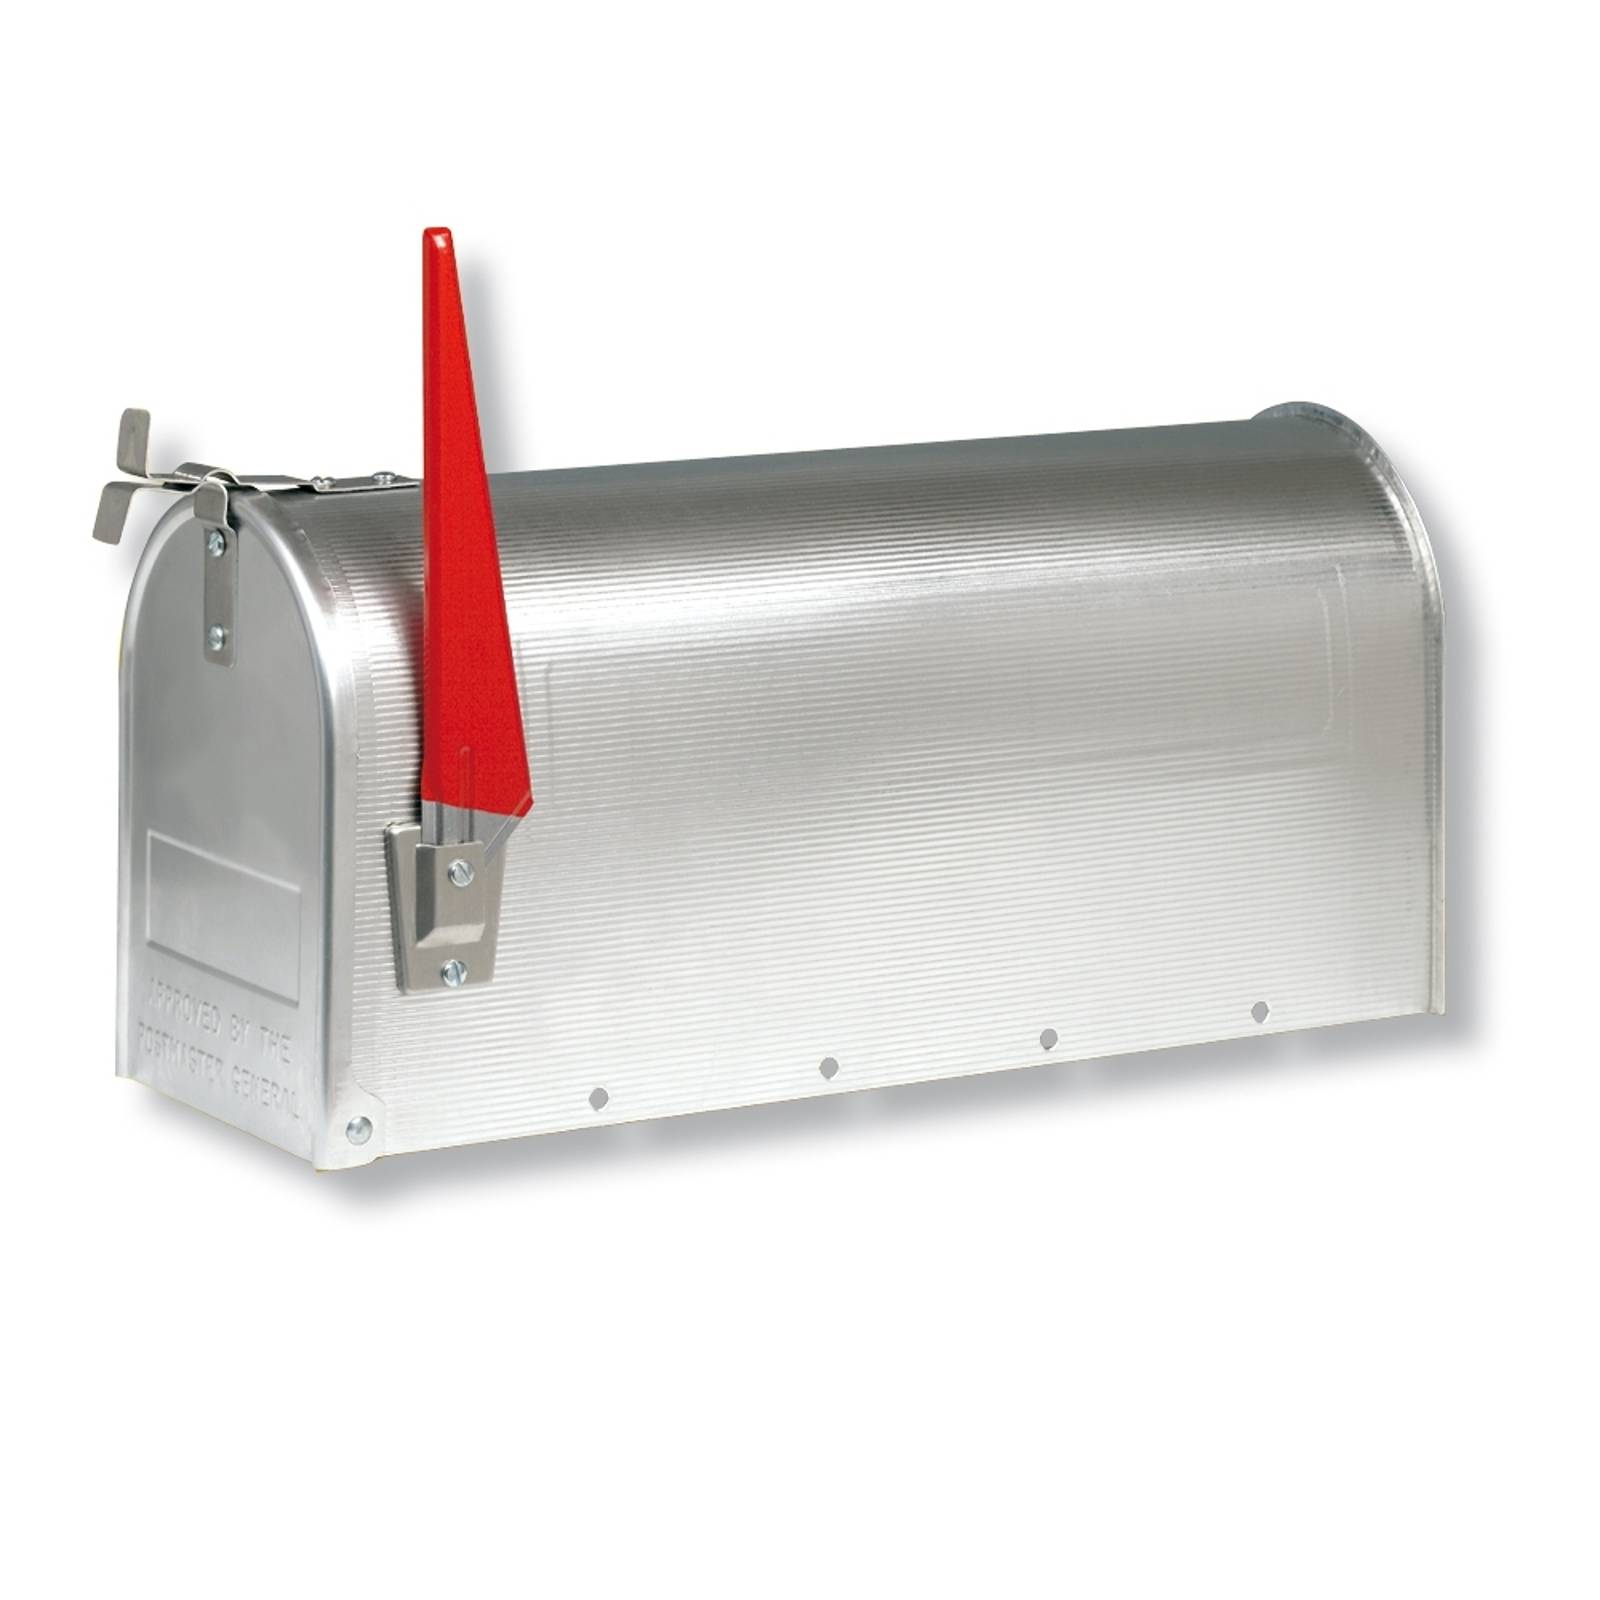 US mailbox with pivotable flag, aluminium from Burgwächter